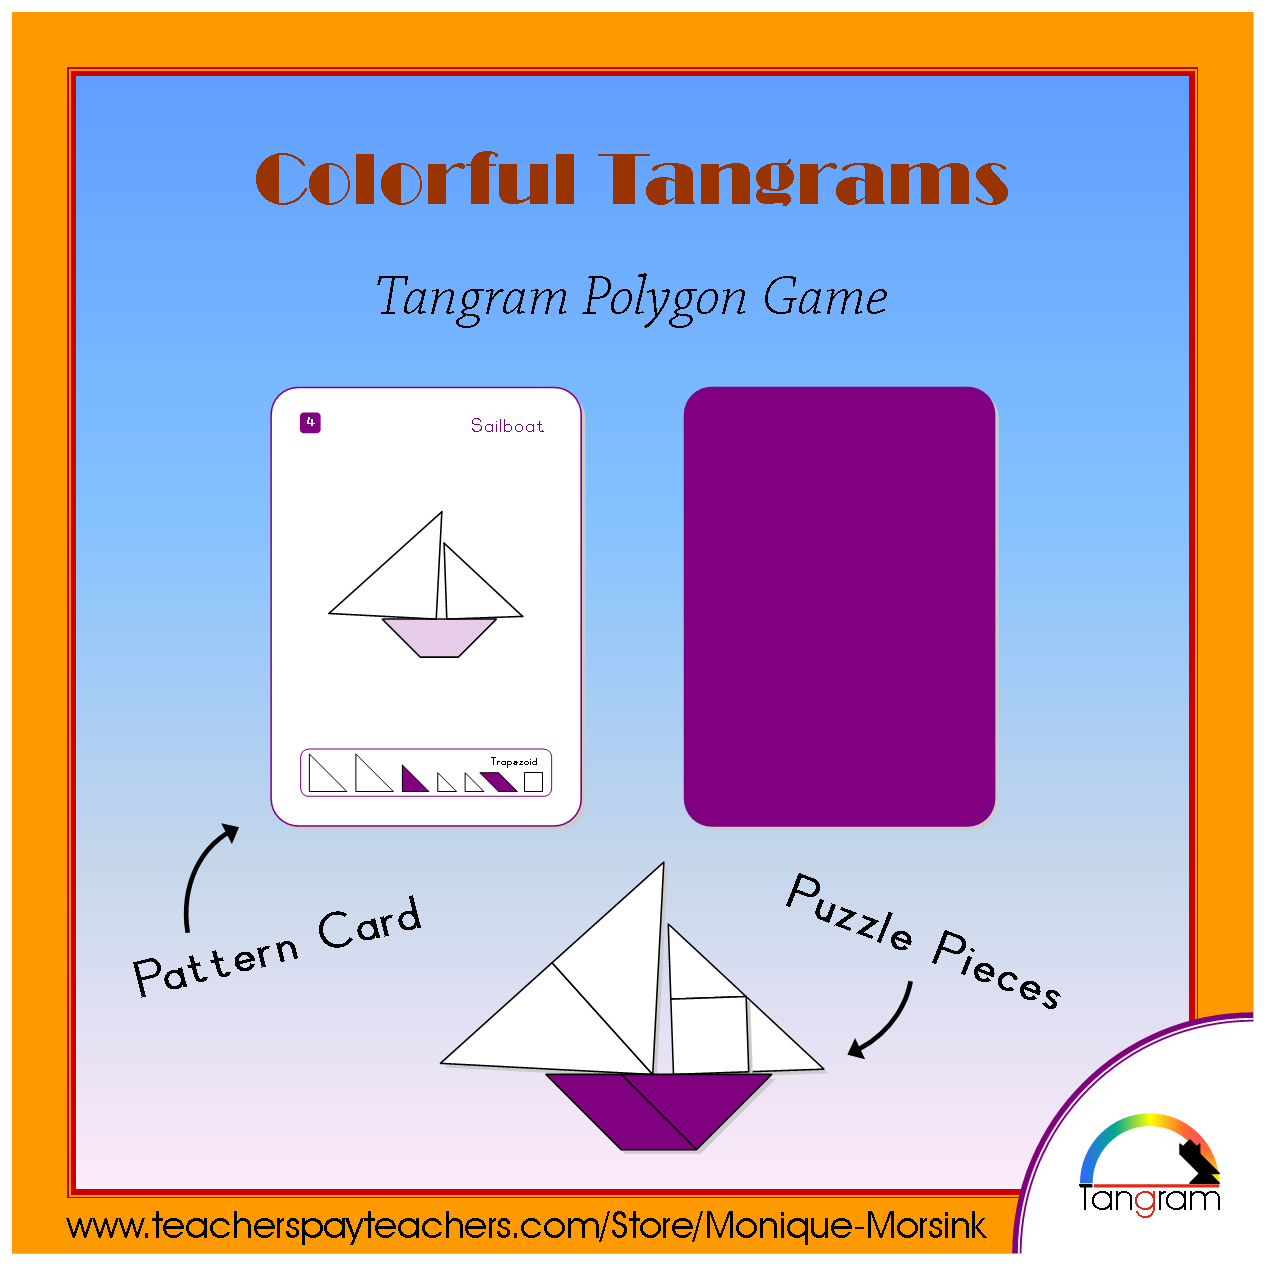 Colorful Tangrams Pirates